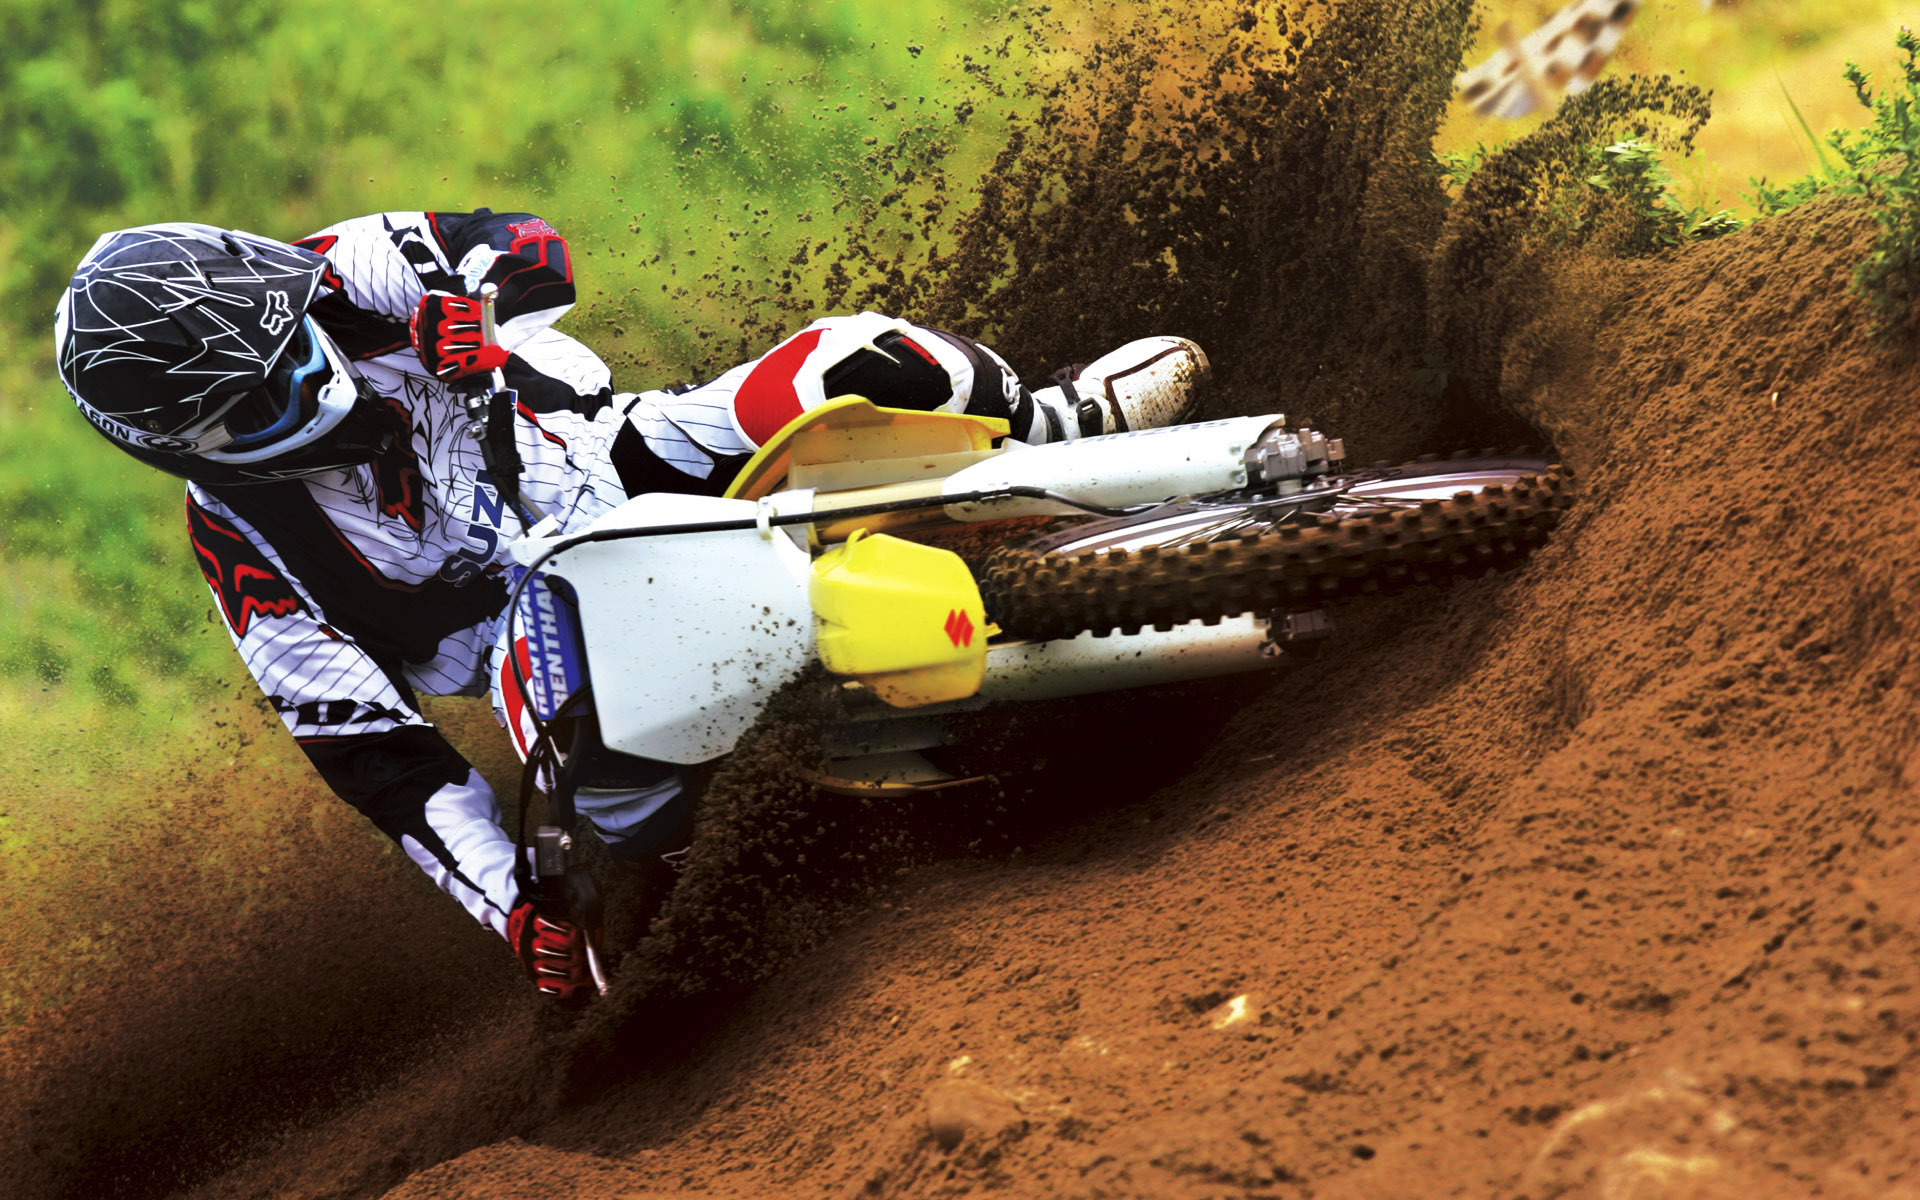 Motocross wallpaper free hd wallpapers page 0 wallpaperlepi - Suzuki Motocross Bike Race Wallpapers Hd Wallpapers